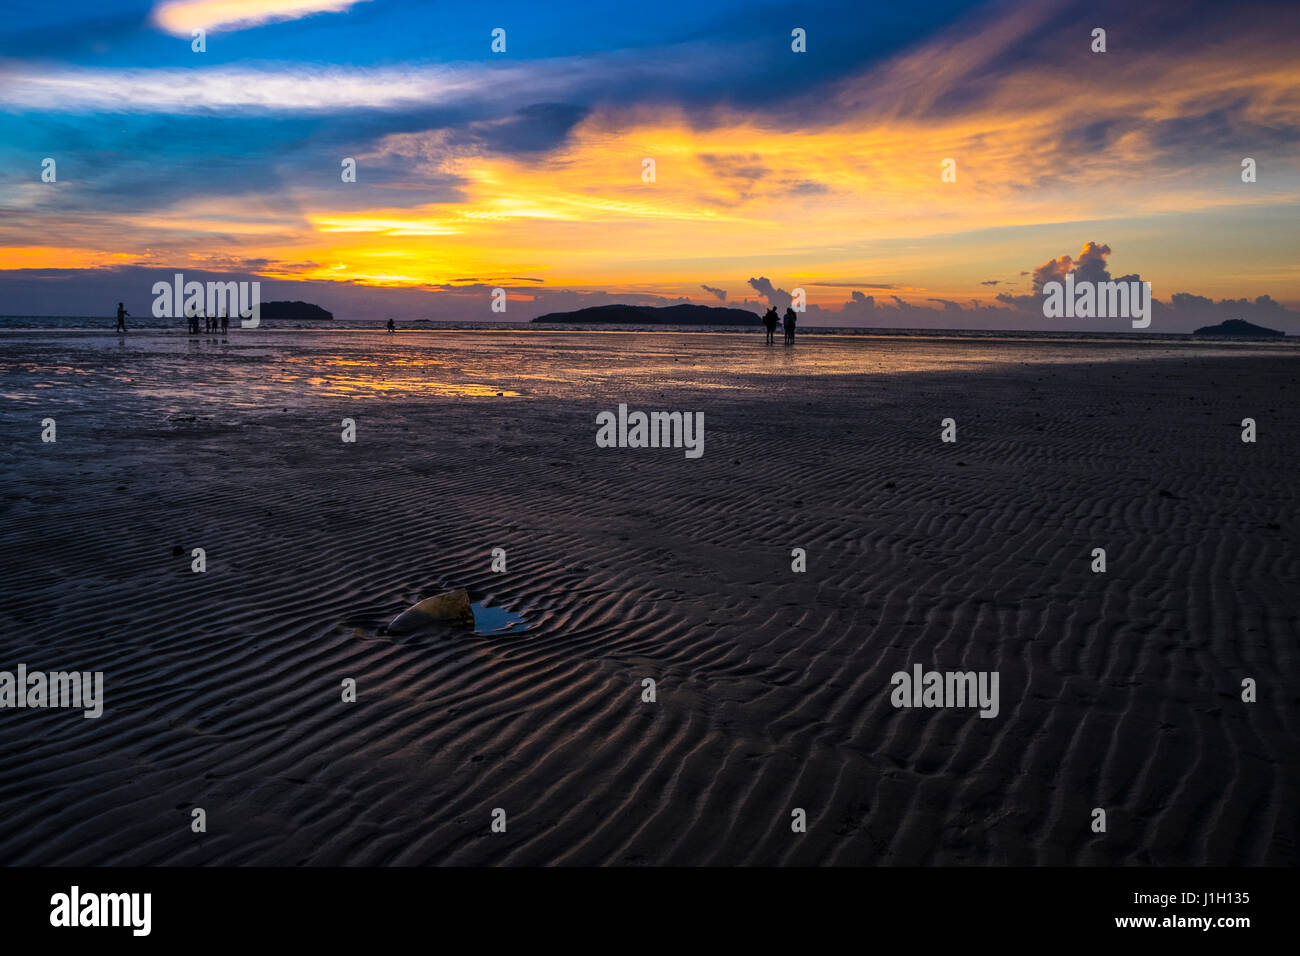 Twilight hour at Tanjung Aru beach in Sabah, Malaysian Borneo. Stock Photo